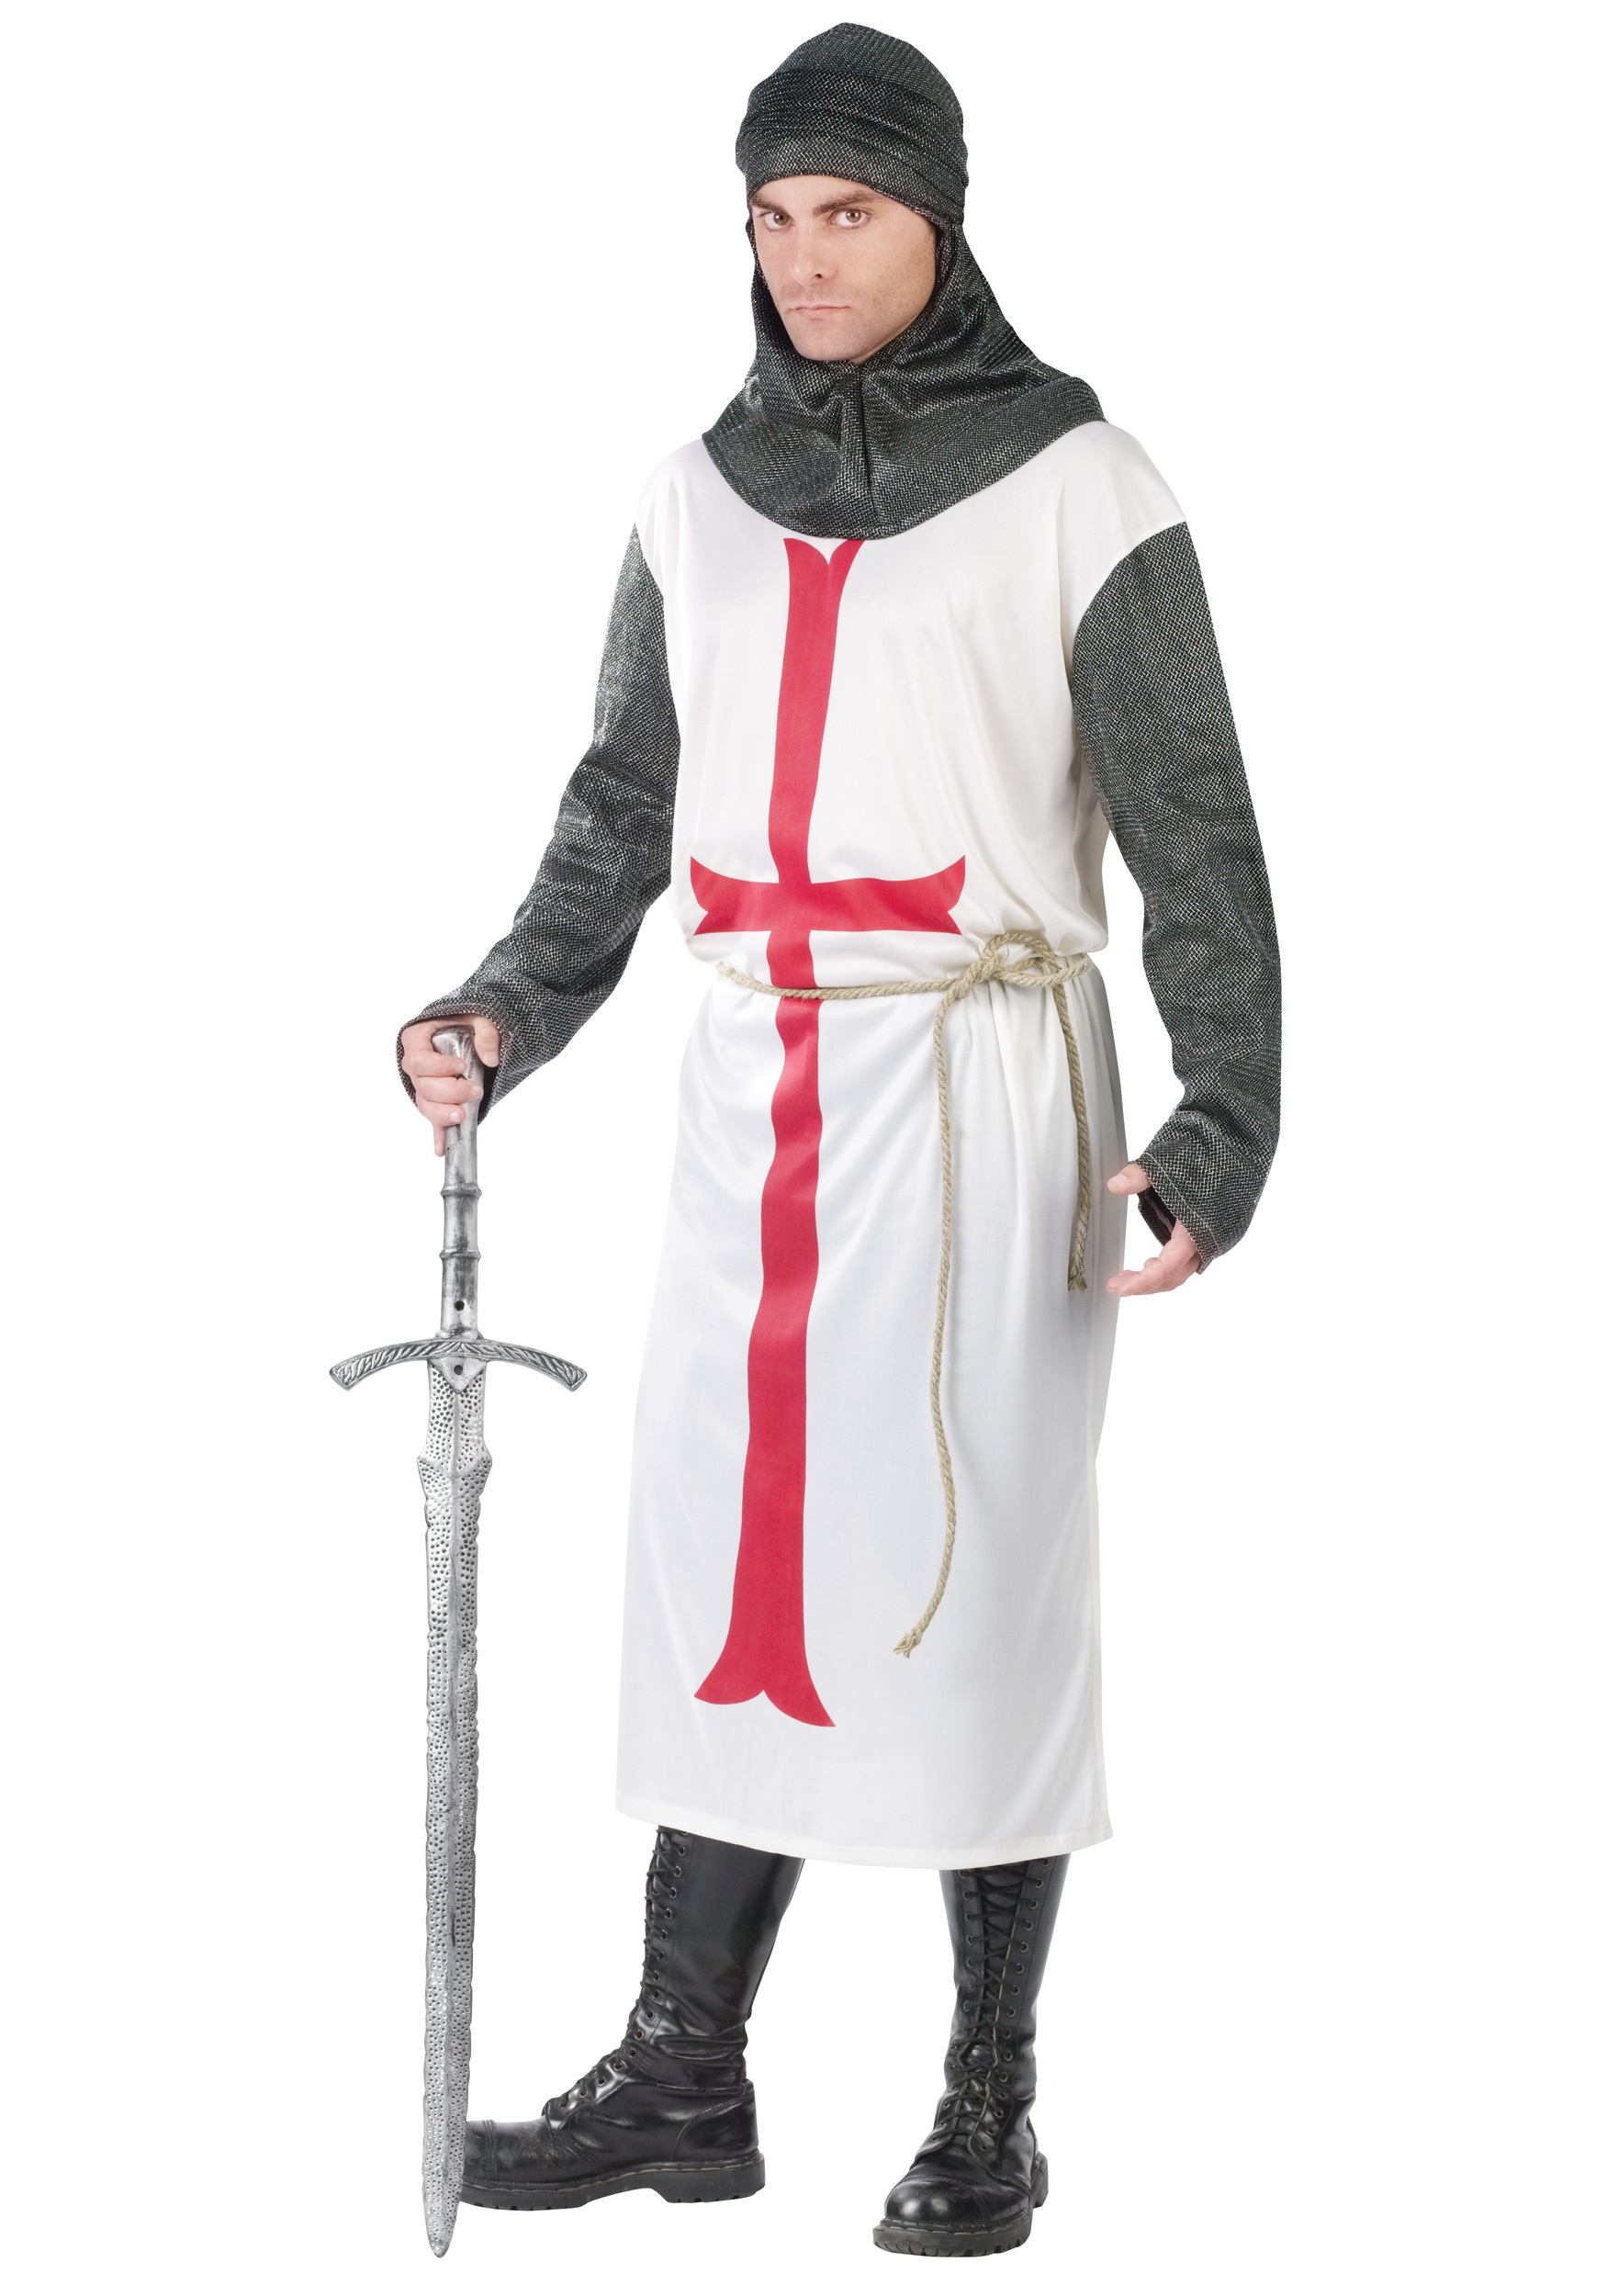 Amazoncom: adult knight costume